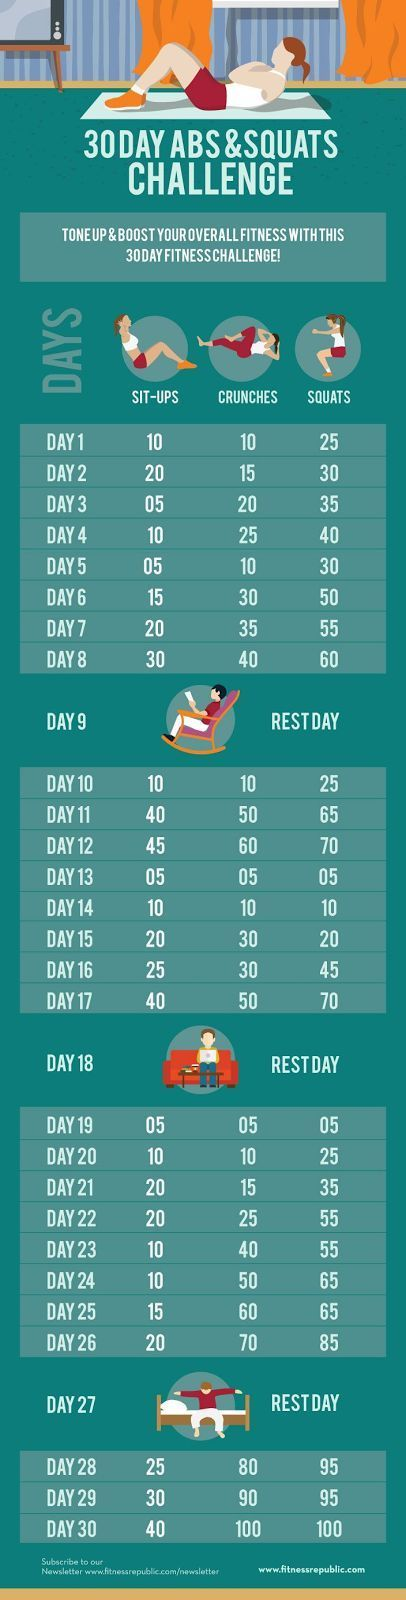 30-Day Abs And Squats Challenge | Squat, ab challenge